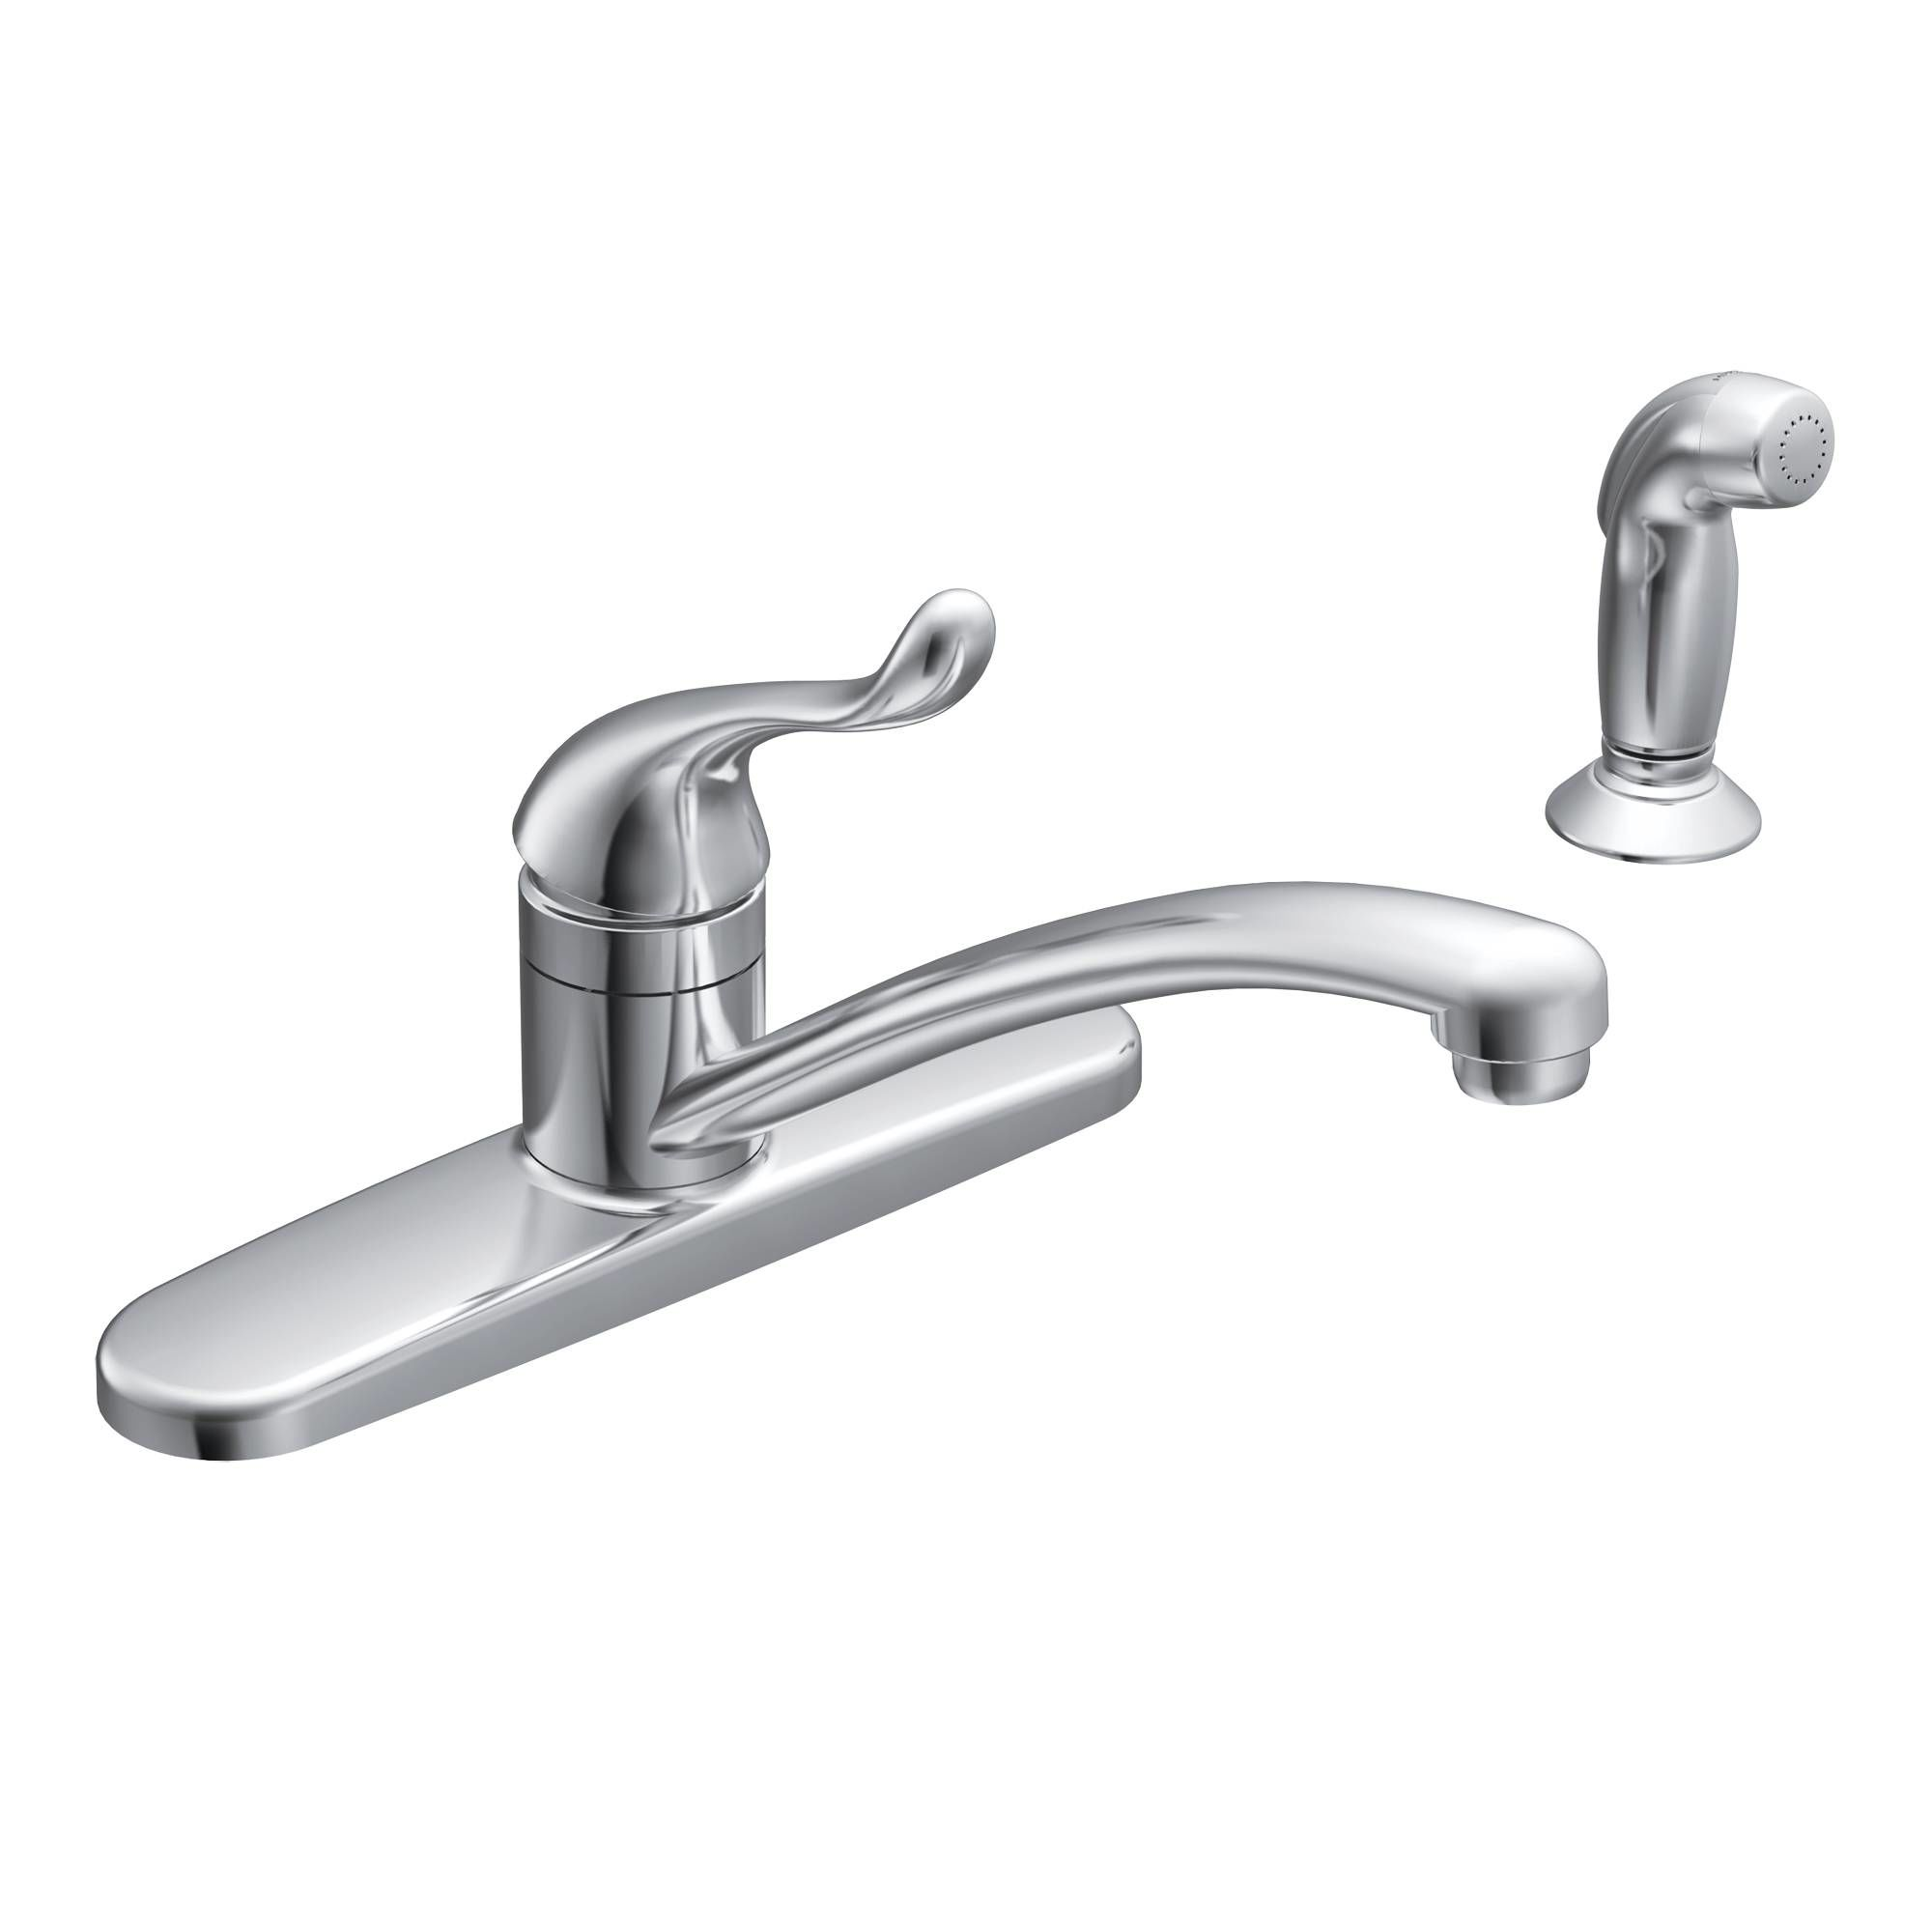 Moen Ca87530 Chrome Kitchen Faucet With Side Spray From The Adler Collection Faucet Com